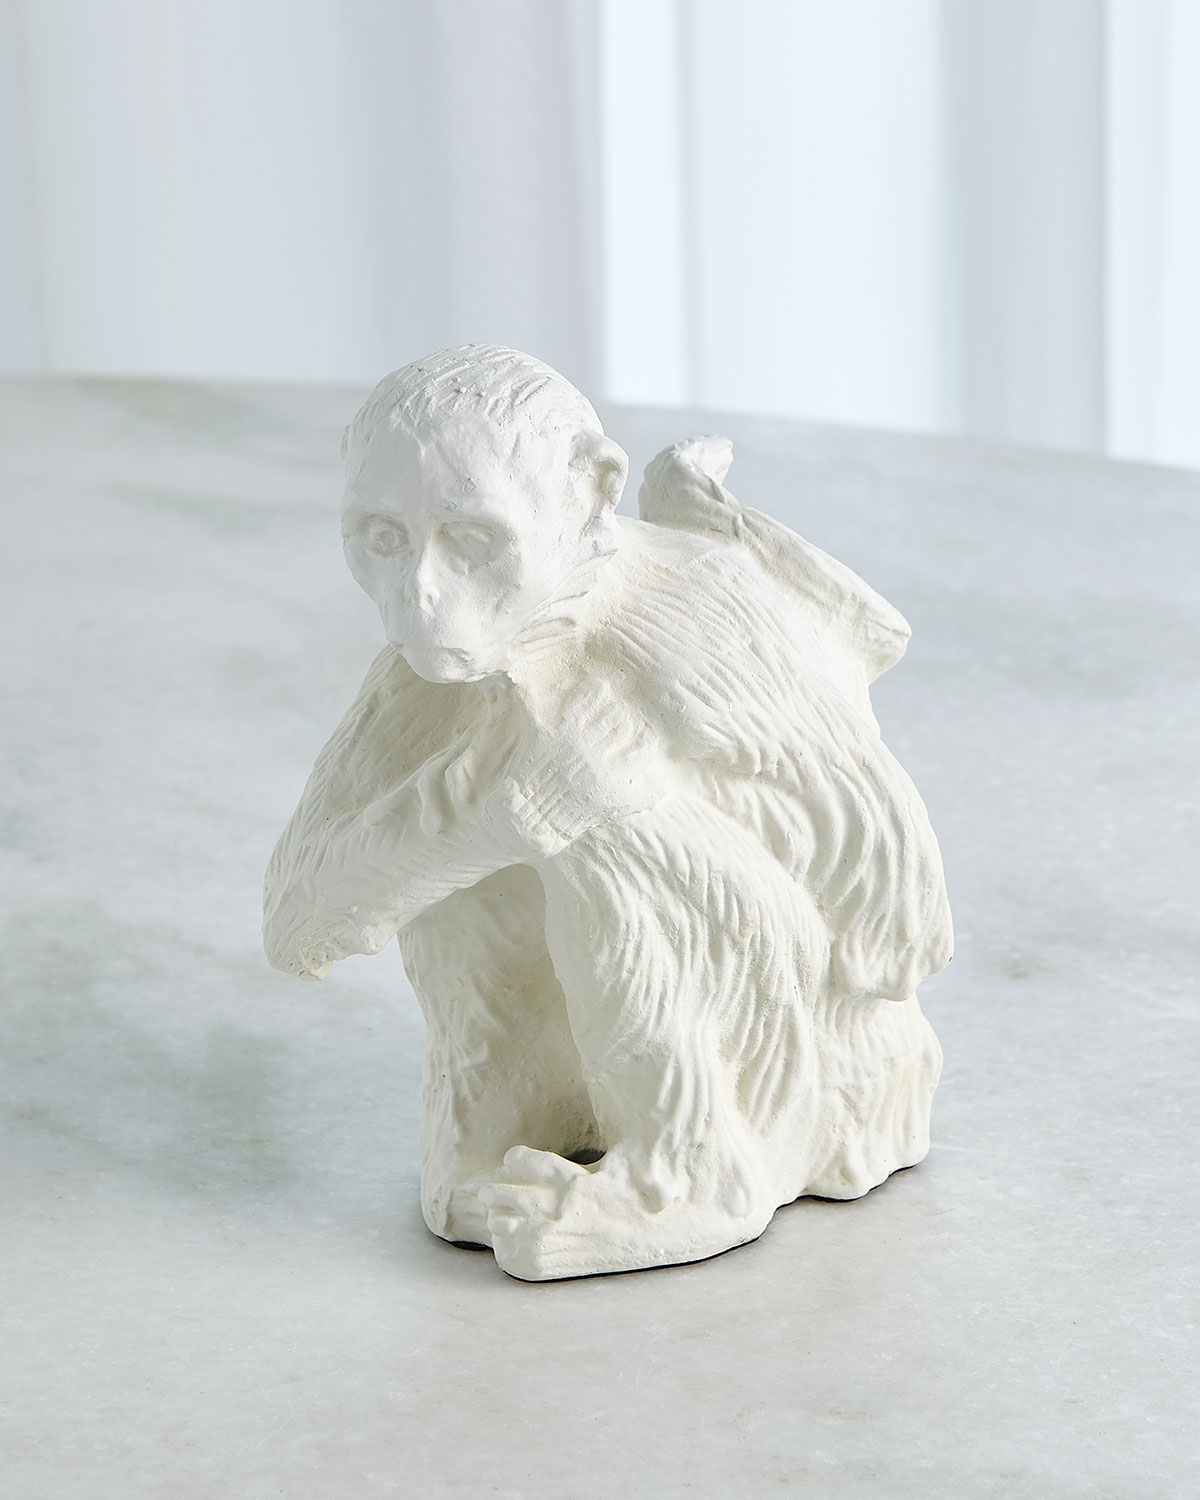 William D Scott Monkey Sculpture